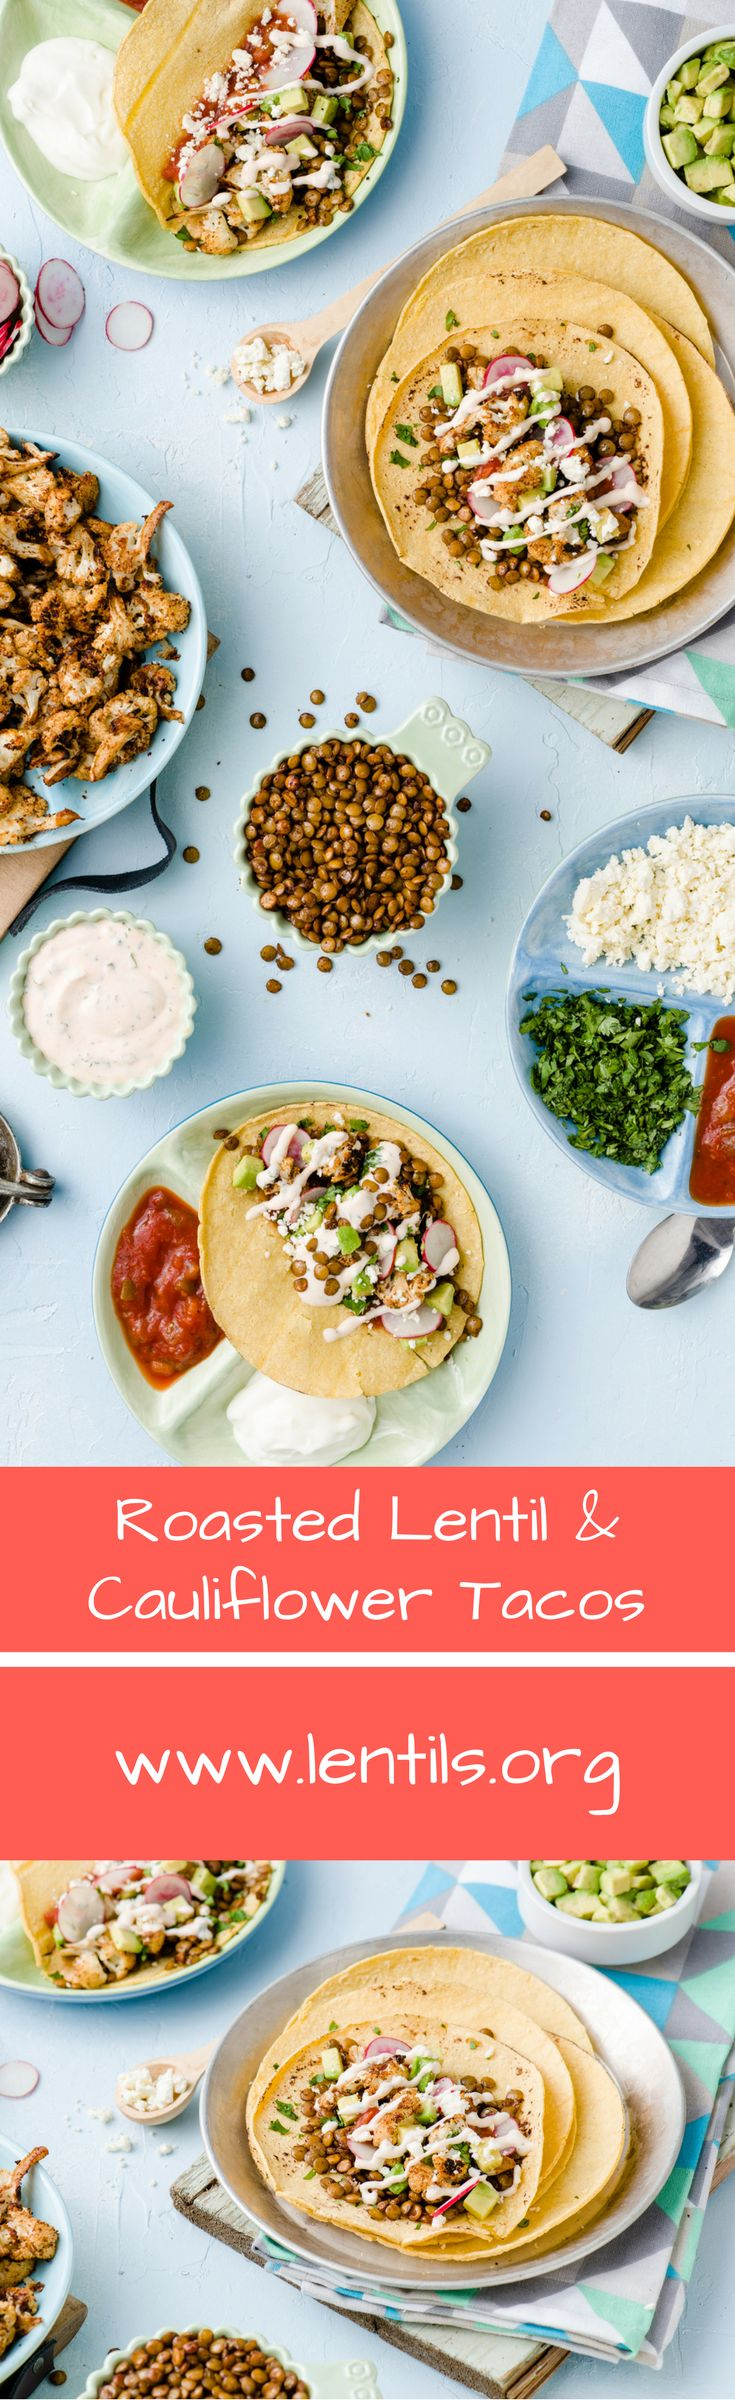 Tacos are always a crowd favourite. This meatless version uses roasted lentils and cauliflower and is so good, you won't even miss the meat.